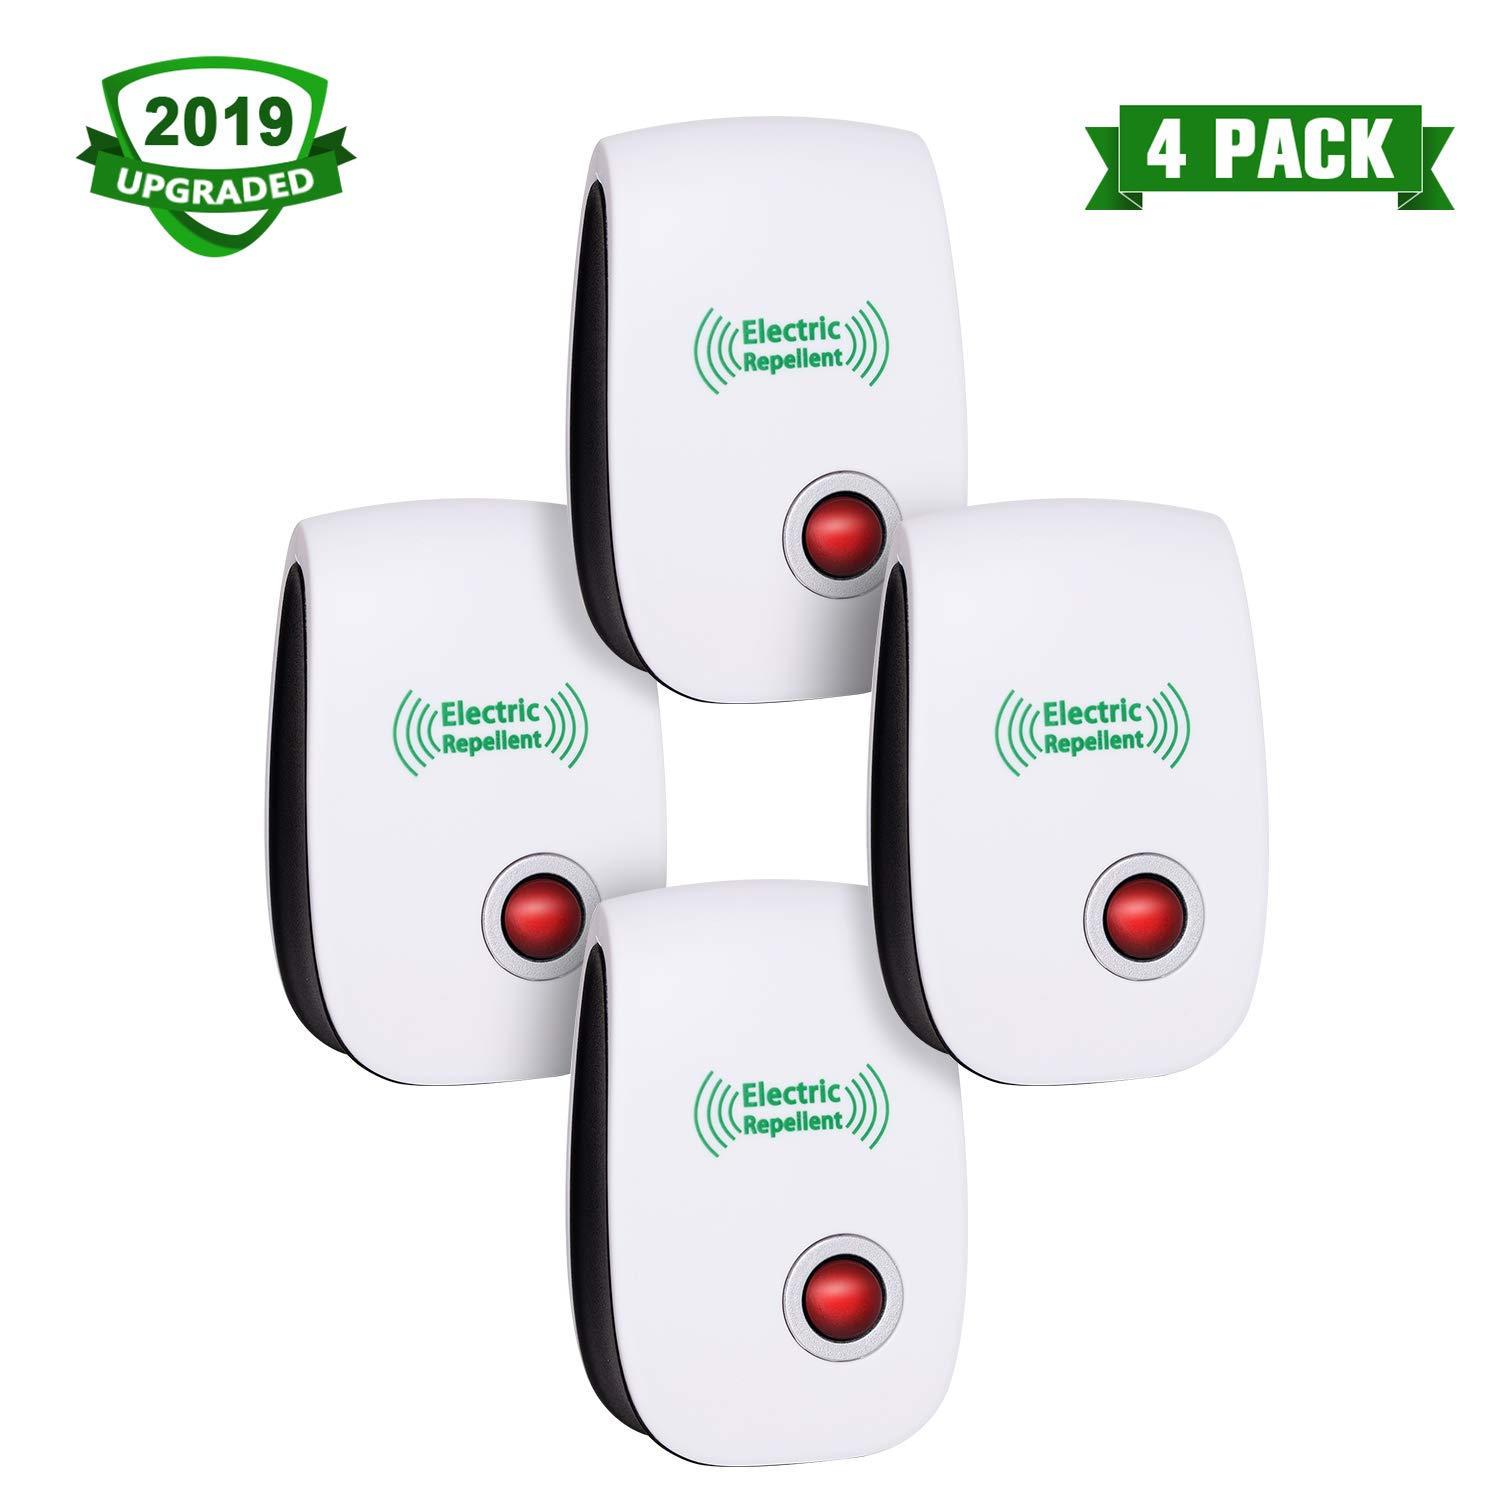 2019 Newest Pest Control Ultrasonic Repellent Electronic Repeller Indoor Plug in Mosquito Control for Bugs and Insects Mice Ant Mosquito Spider Rodent Roach, Child and Pets Safe Control (4 Packs) by CIVPOWER